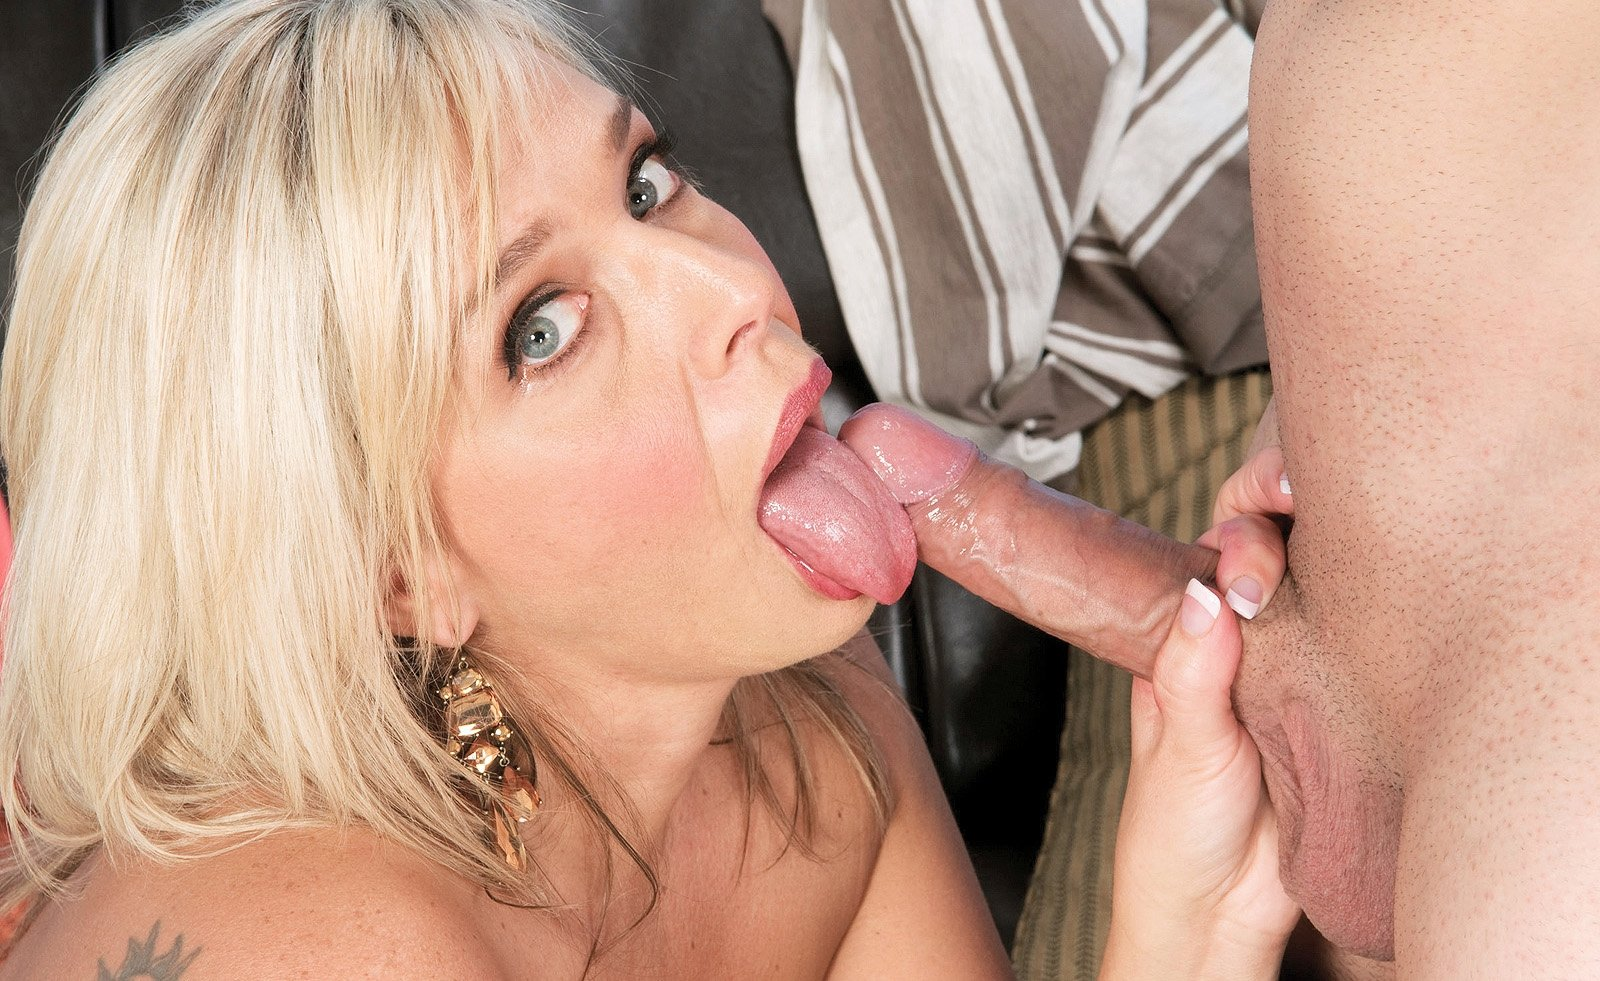 Milf loves young cocks porn gif